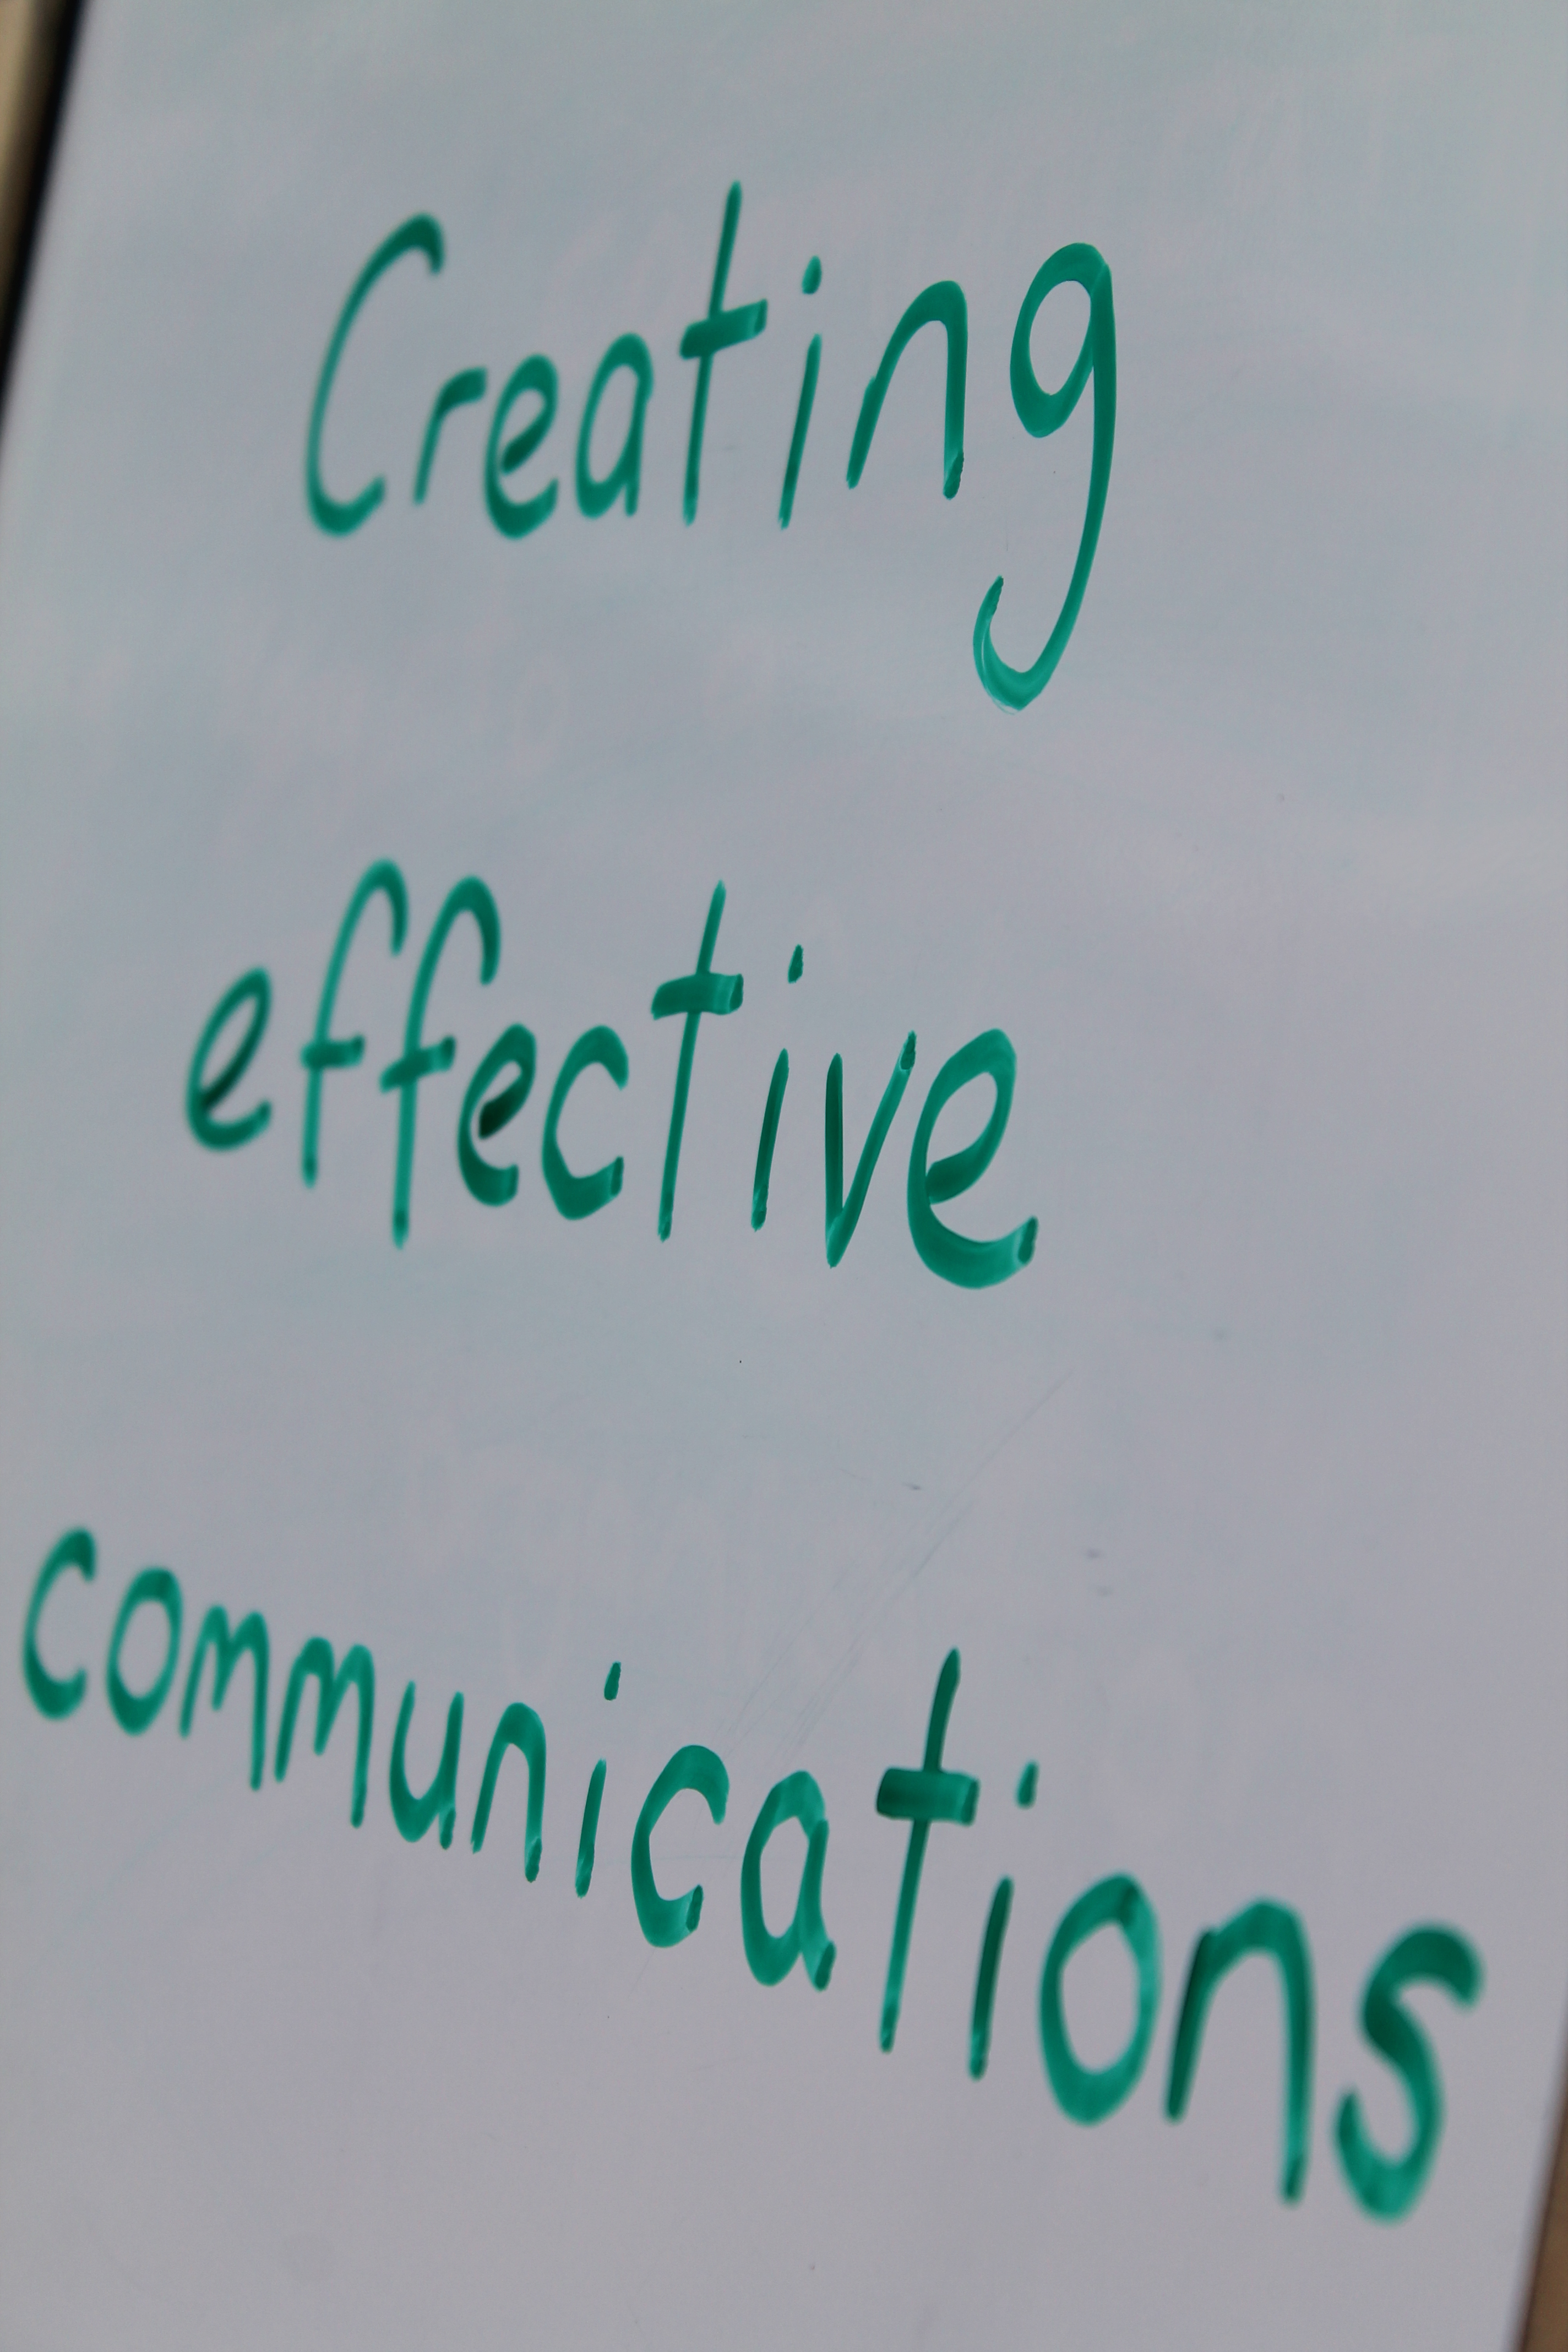 Creating effective communications